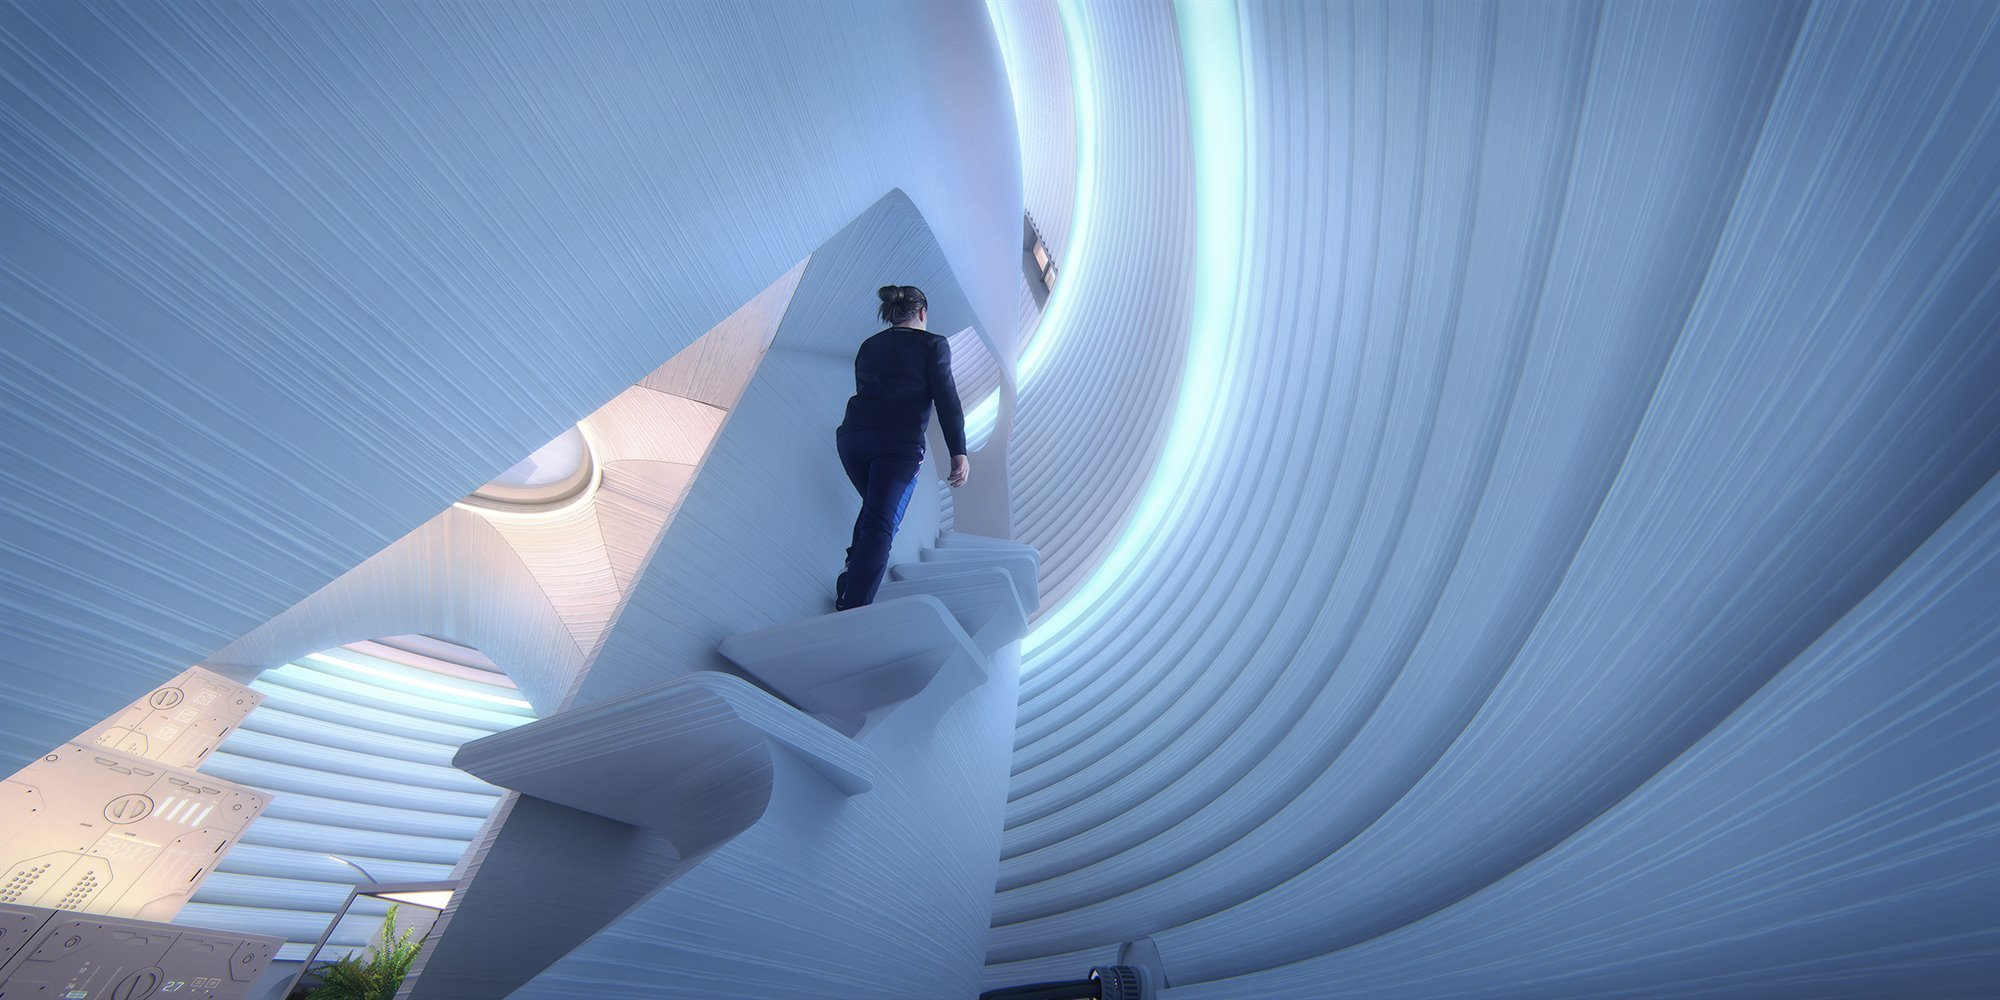 AI-SpaceFactory-Mars-Habitat-Interior-Light Stairs-2400p. Una casa soleada